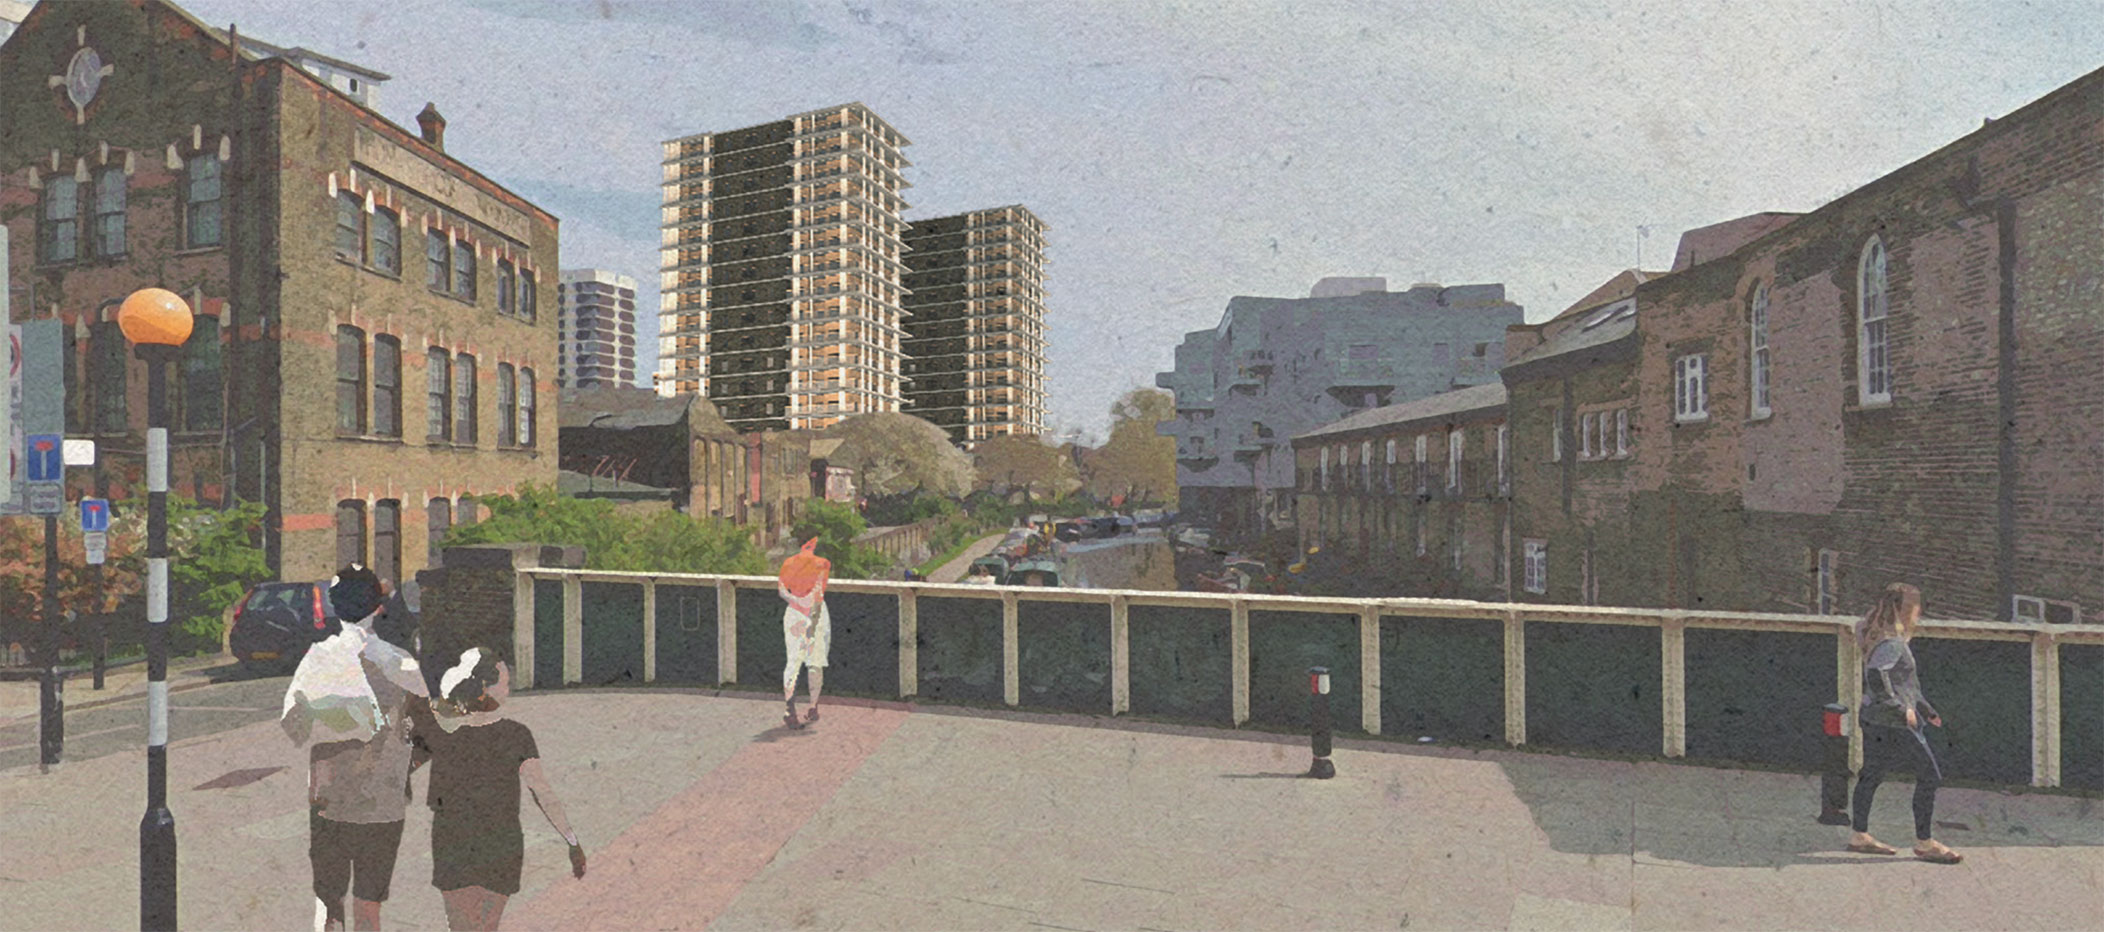 View of the redeveloped towers from Bridport Place Bridge.